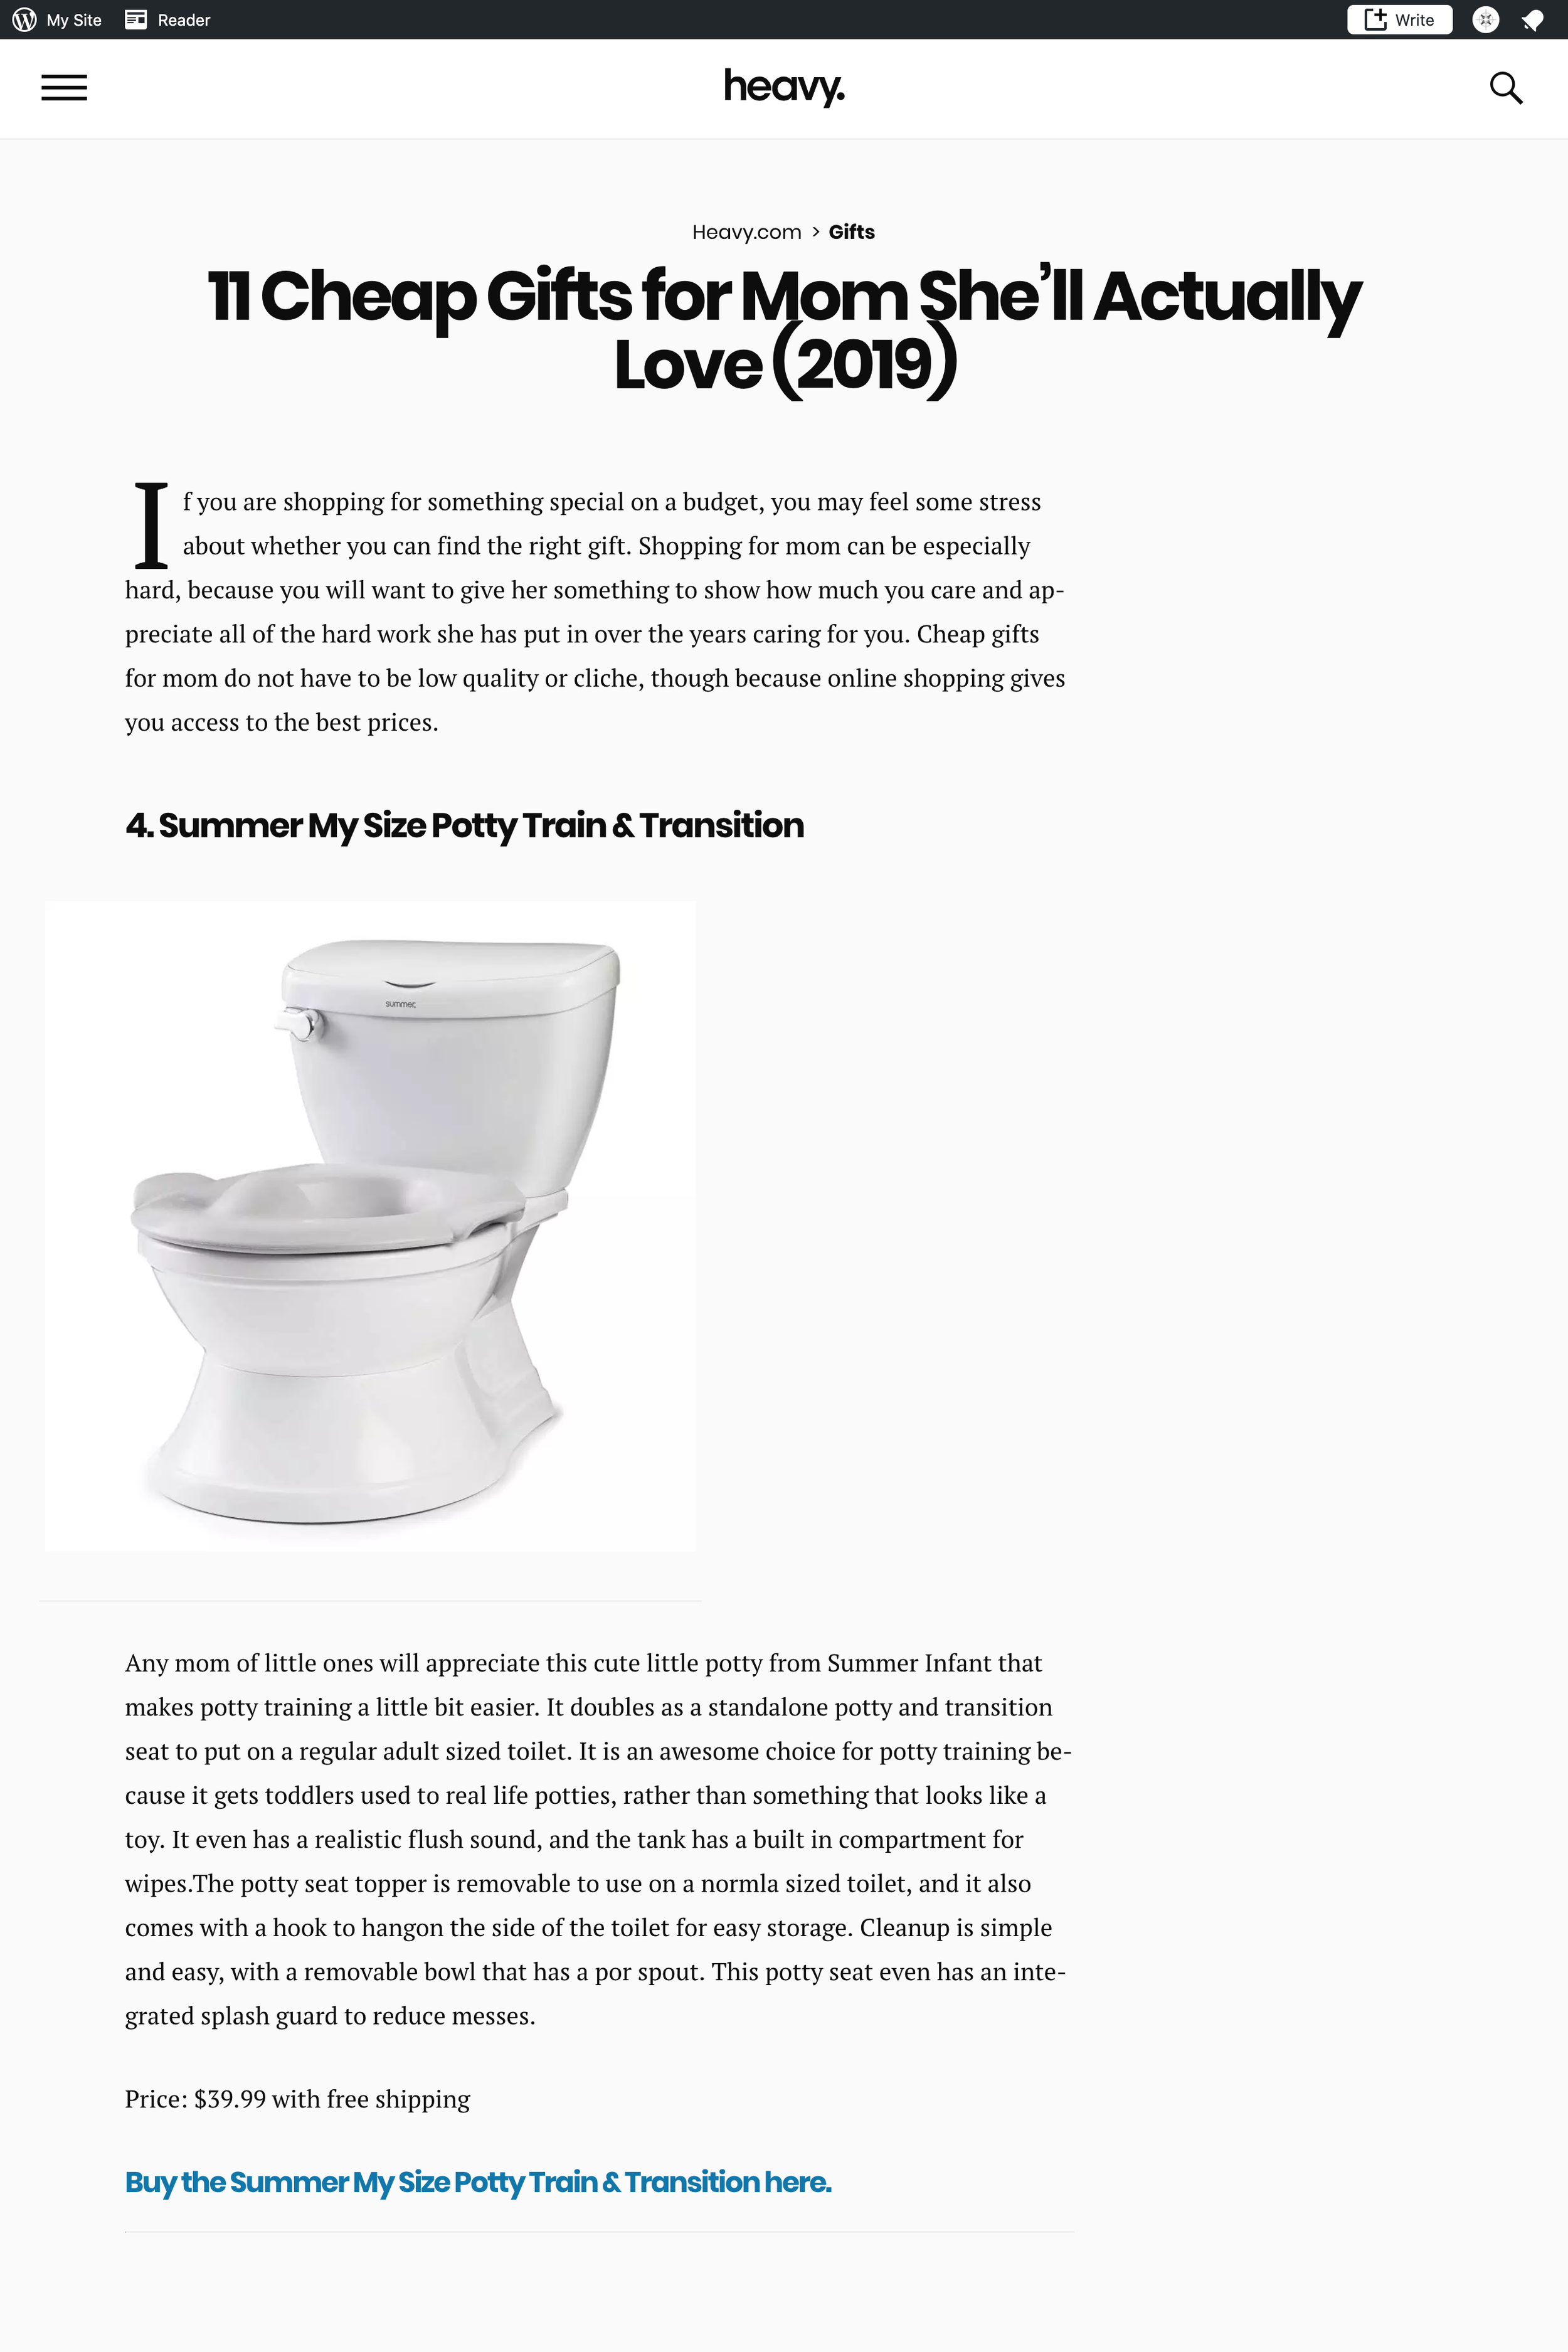 2019.05.00_Heavy_Summer My Size Potty Train & Transition_Roundup 4 of 5_cropped 2x3.png